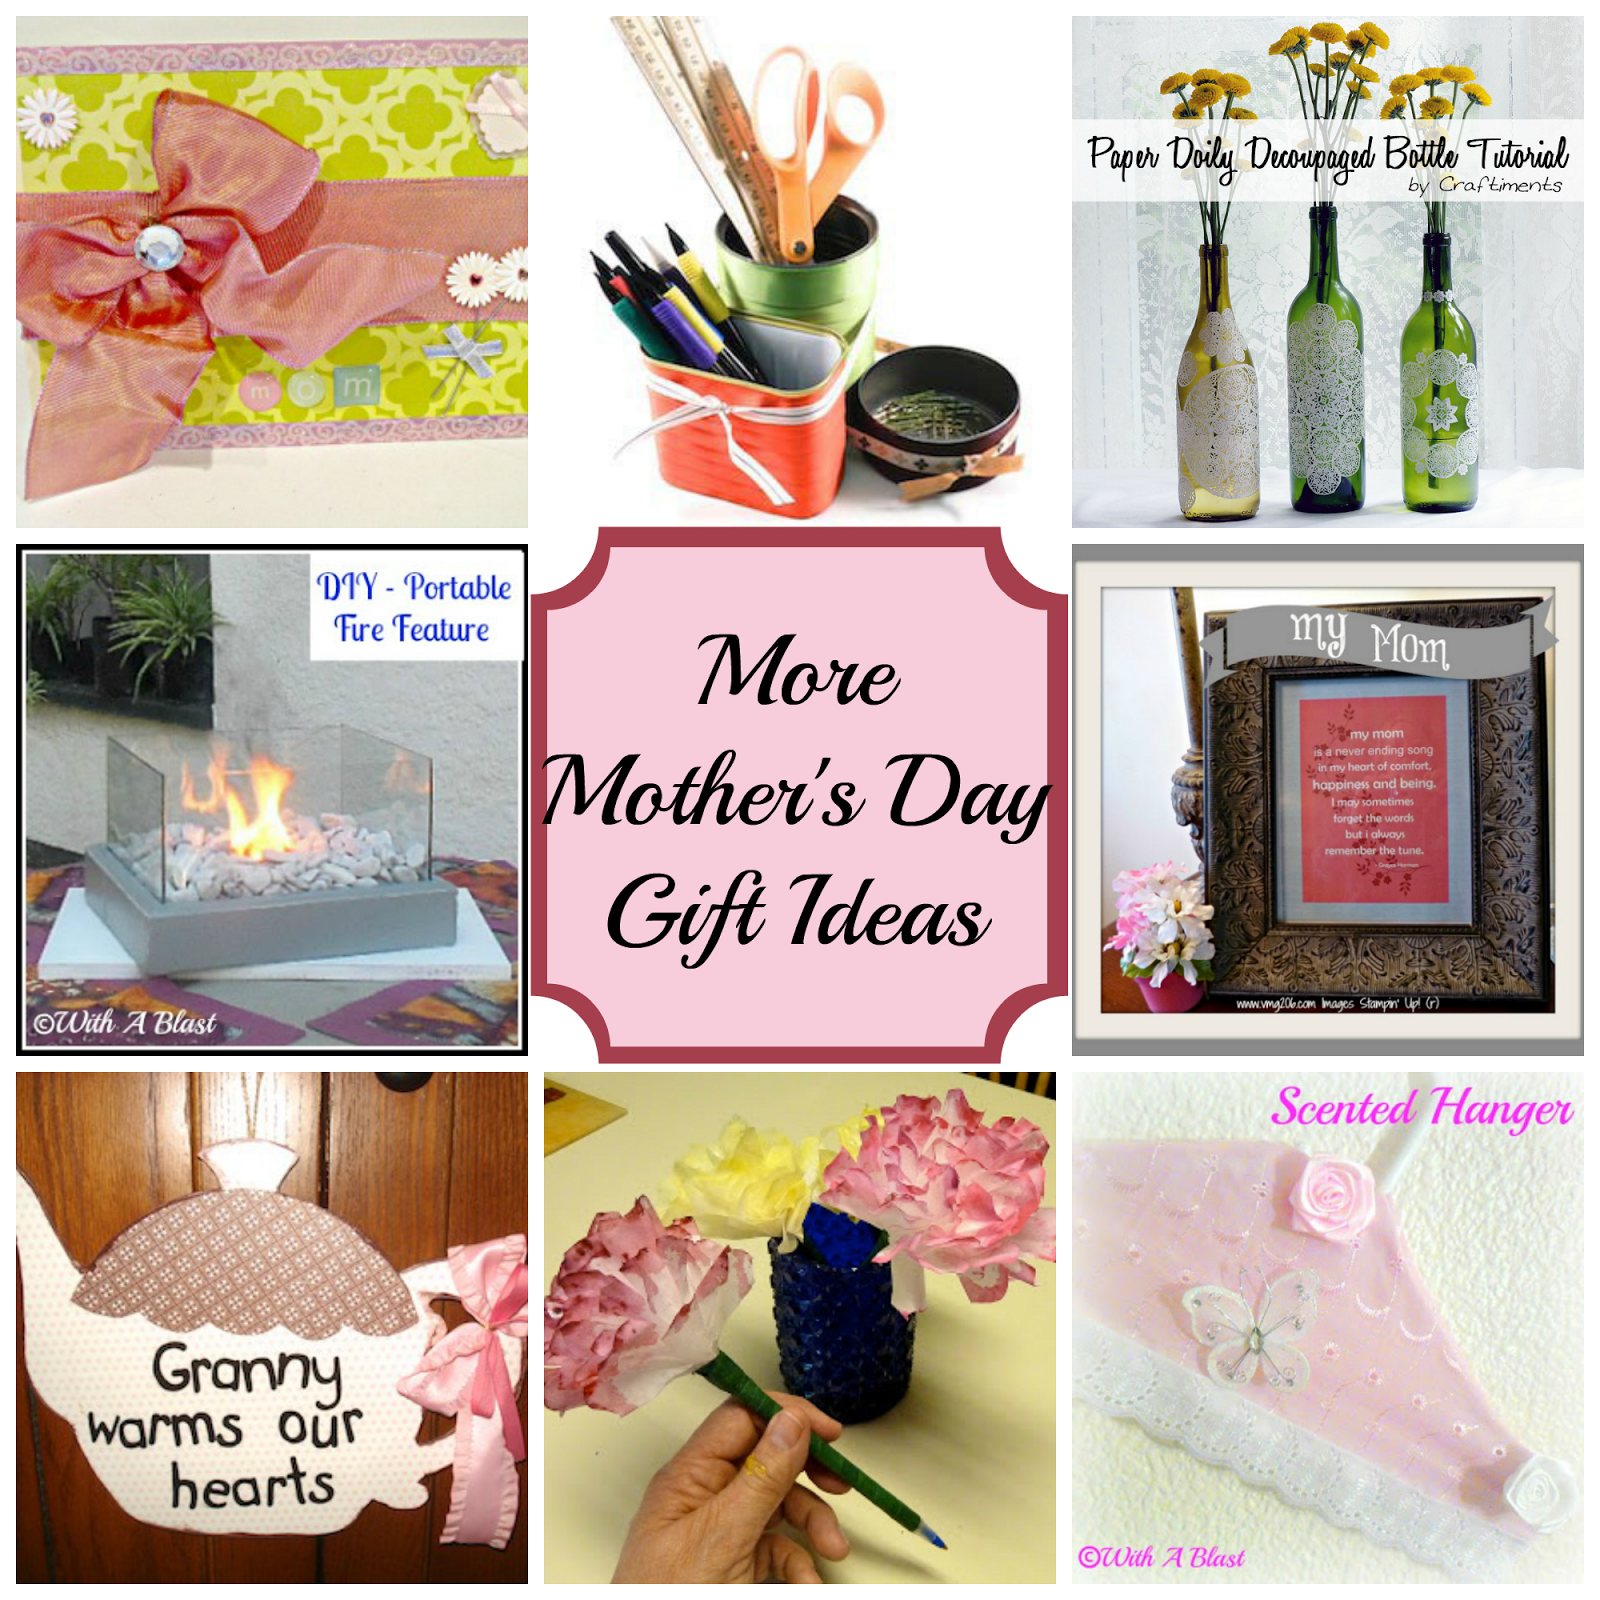 Every Mom Deserves Something Unique On Her Special Day With The Great Gifts Gift Ideas Galore Providing Some Moment